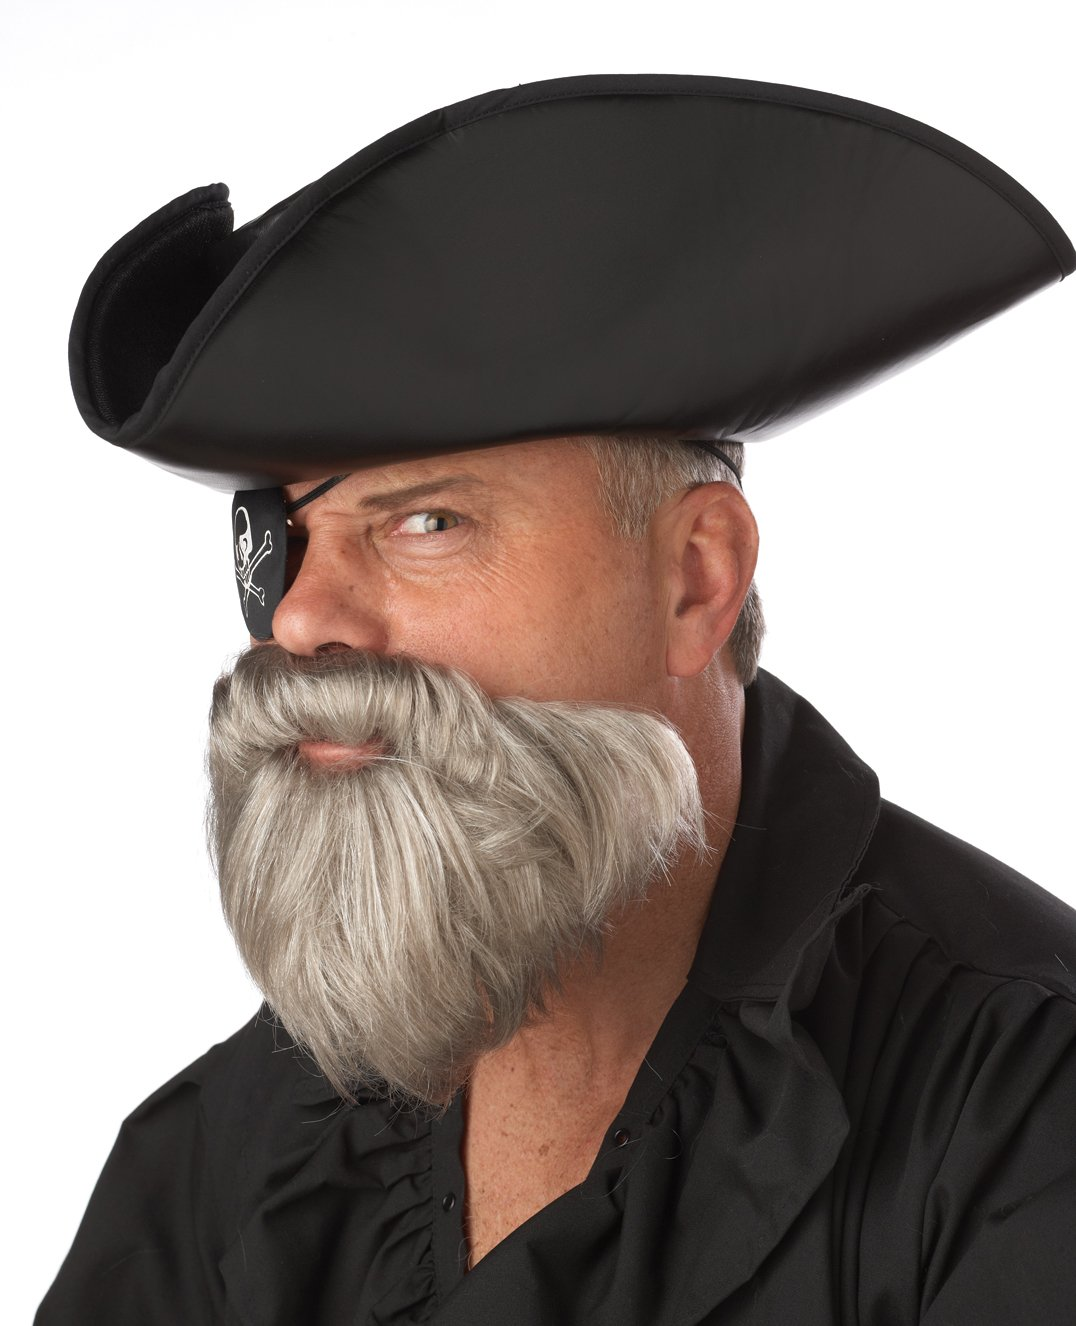 The Captain Pirate Adult Costume Beard and Moustache Accessory #70097